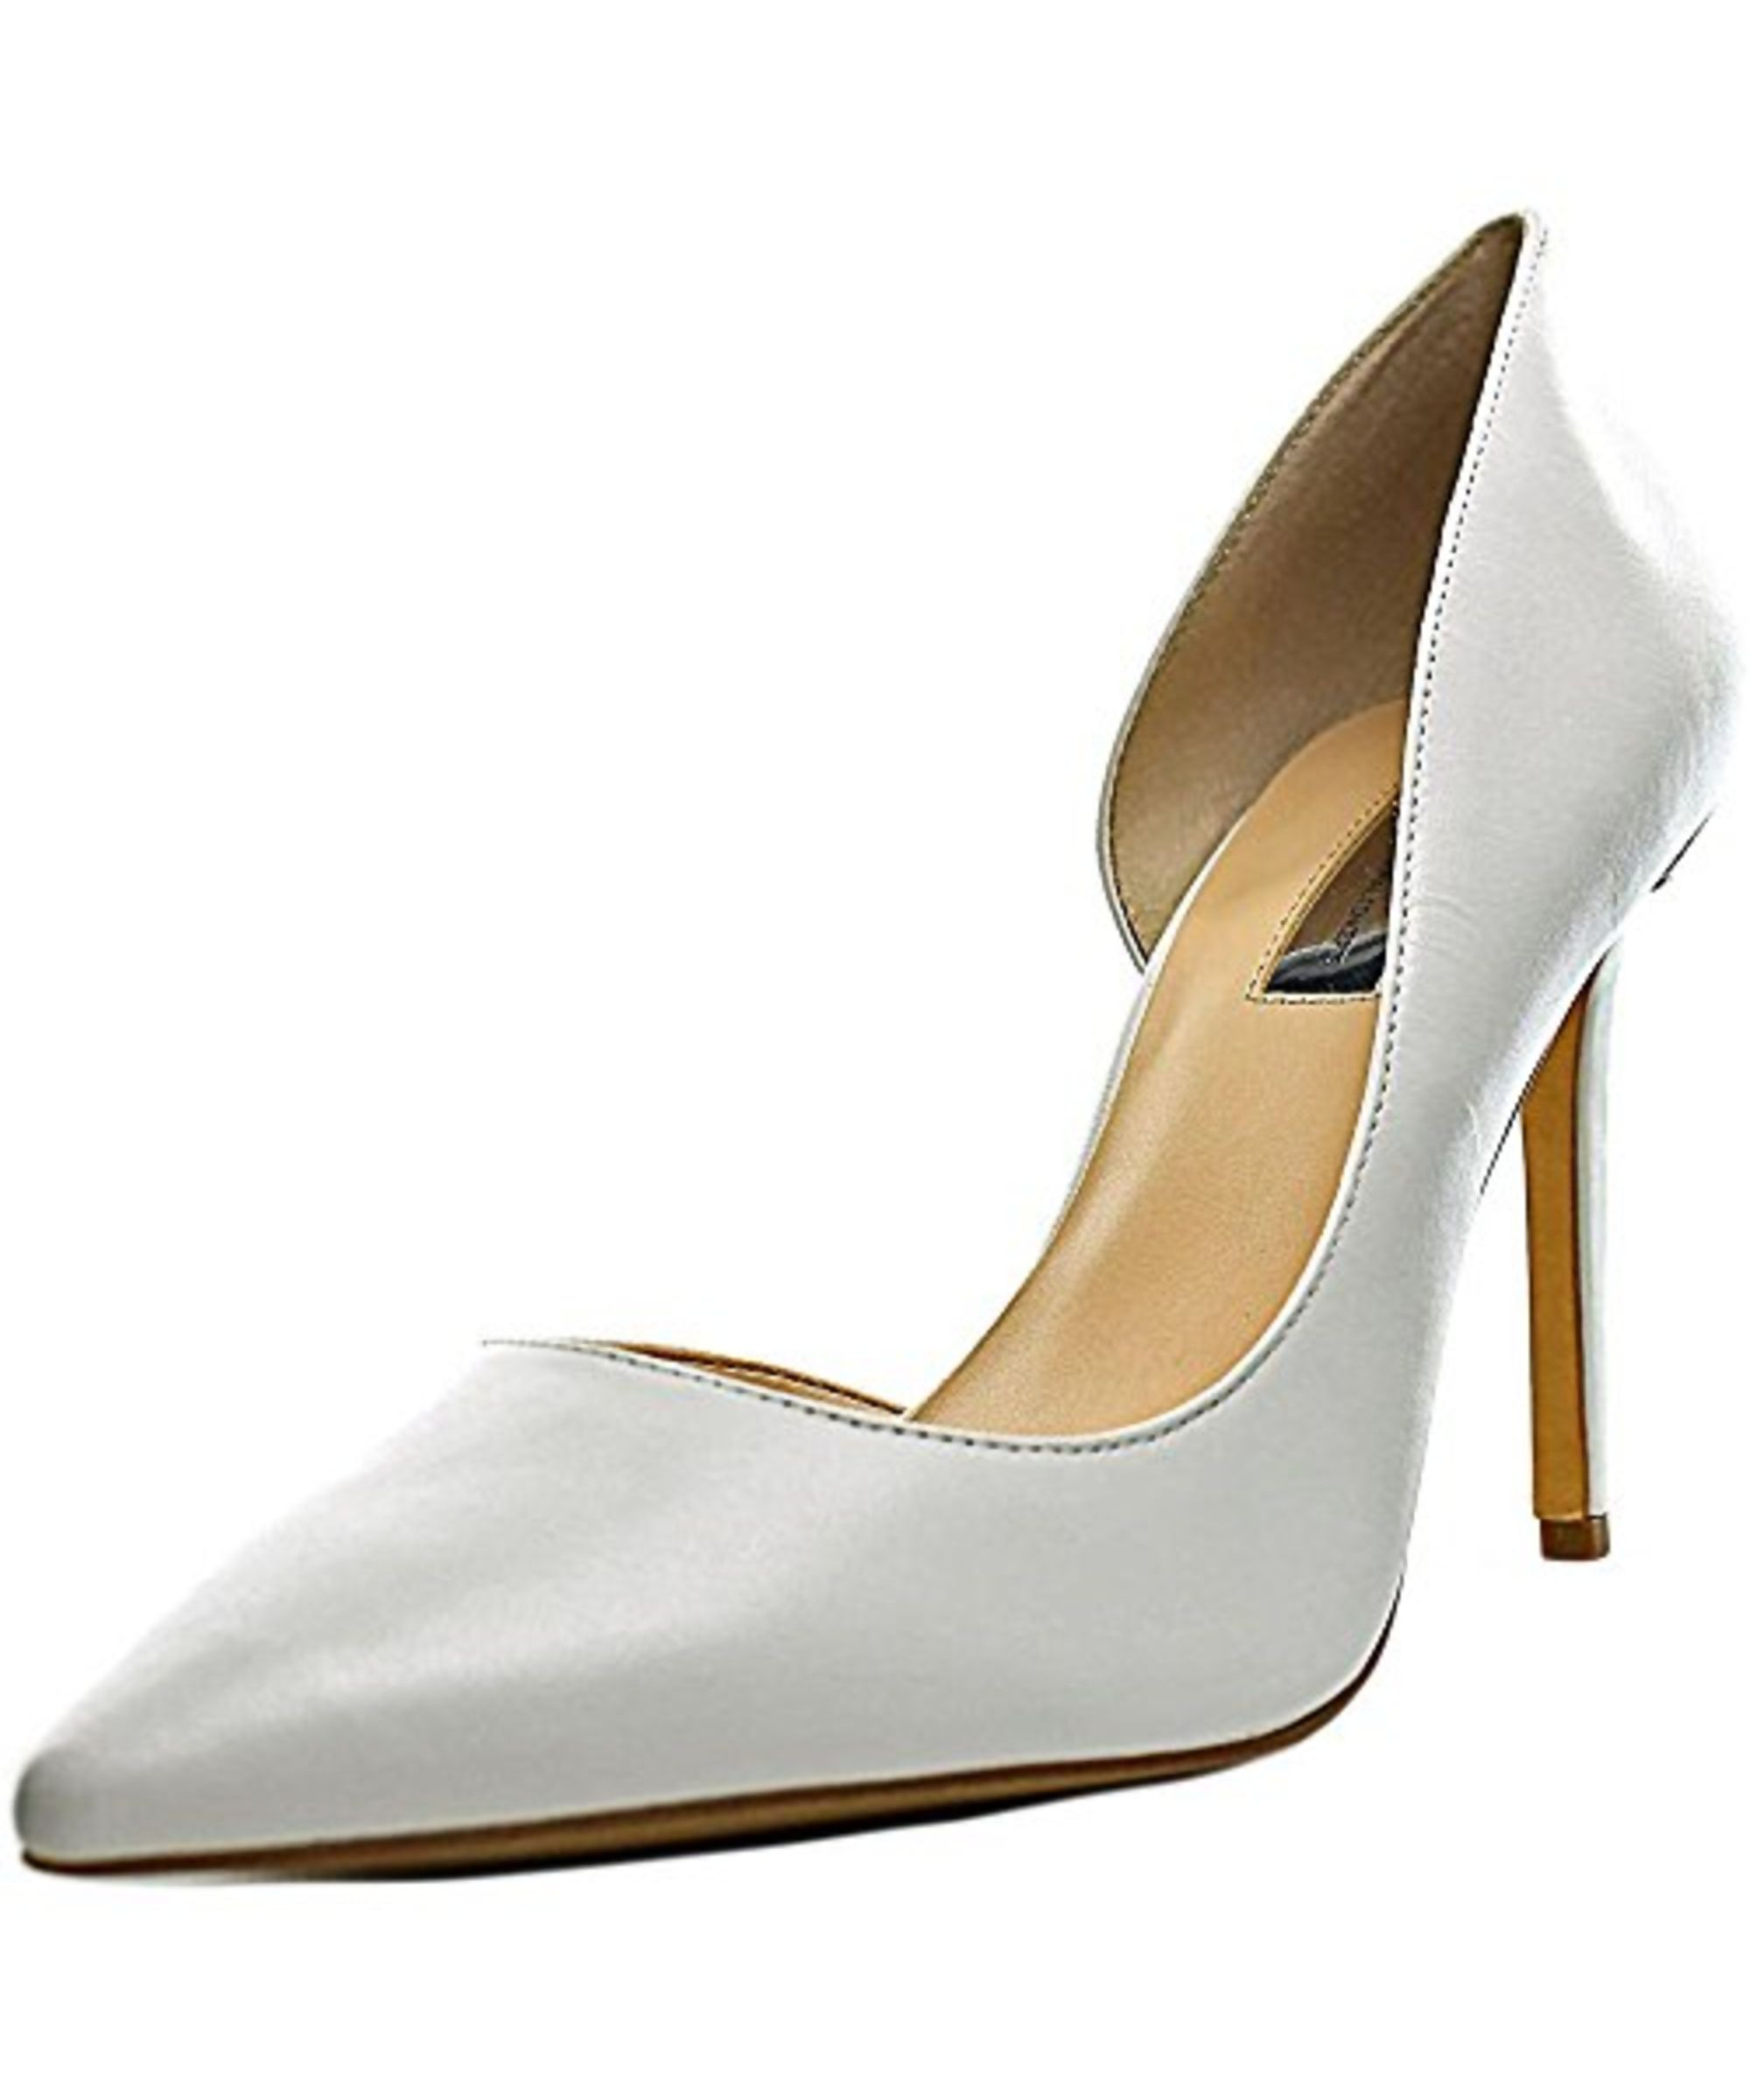 INC INTERNATIONAL CONCEPTS | Inc International Concepts Womens Kenjay  Pointed Toe D-Orsay Pumps #